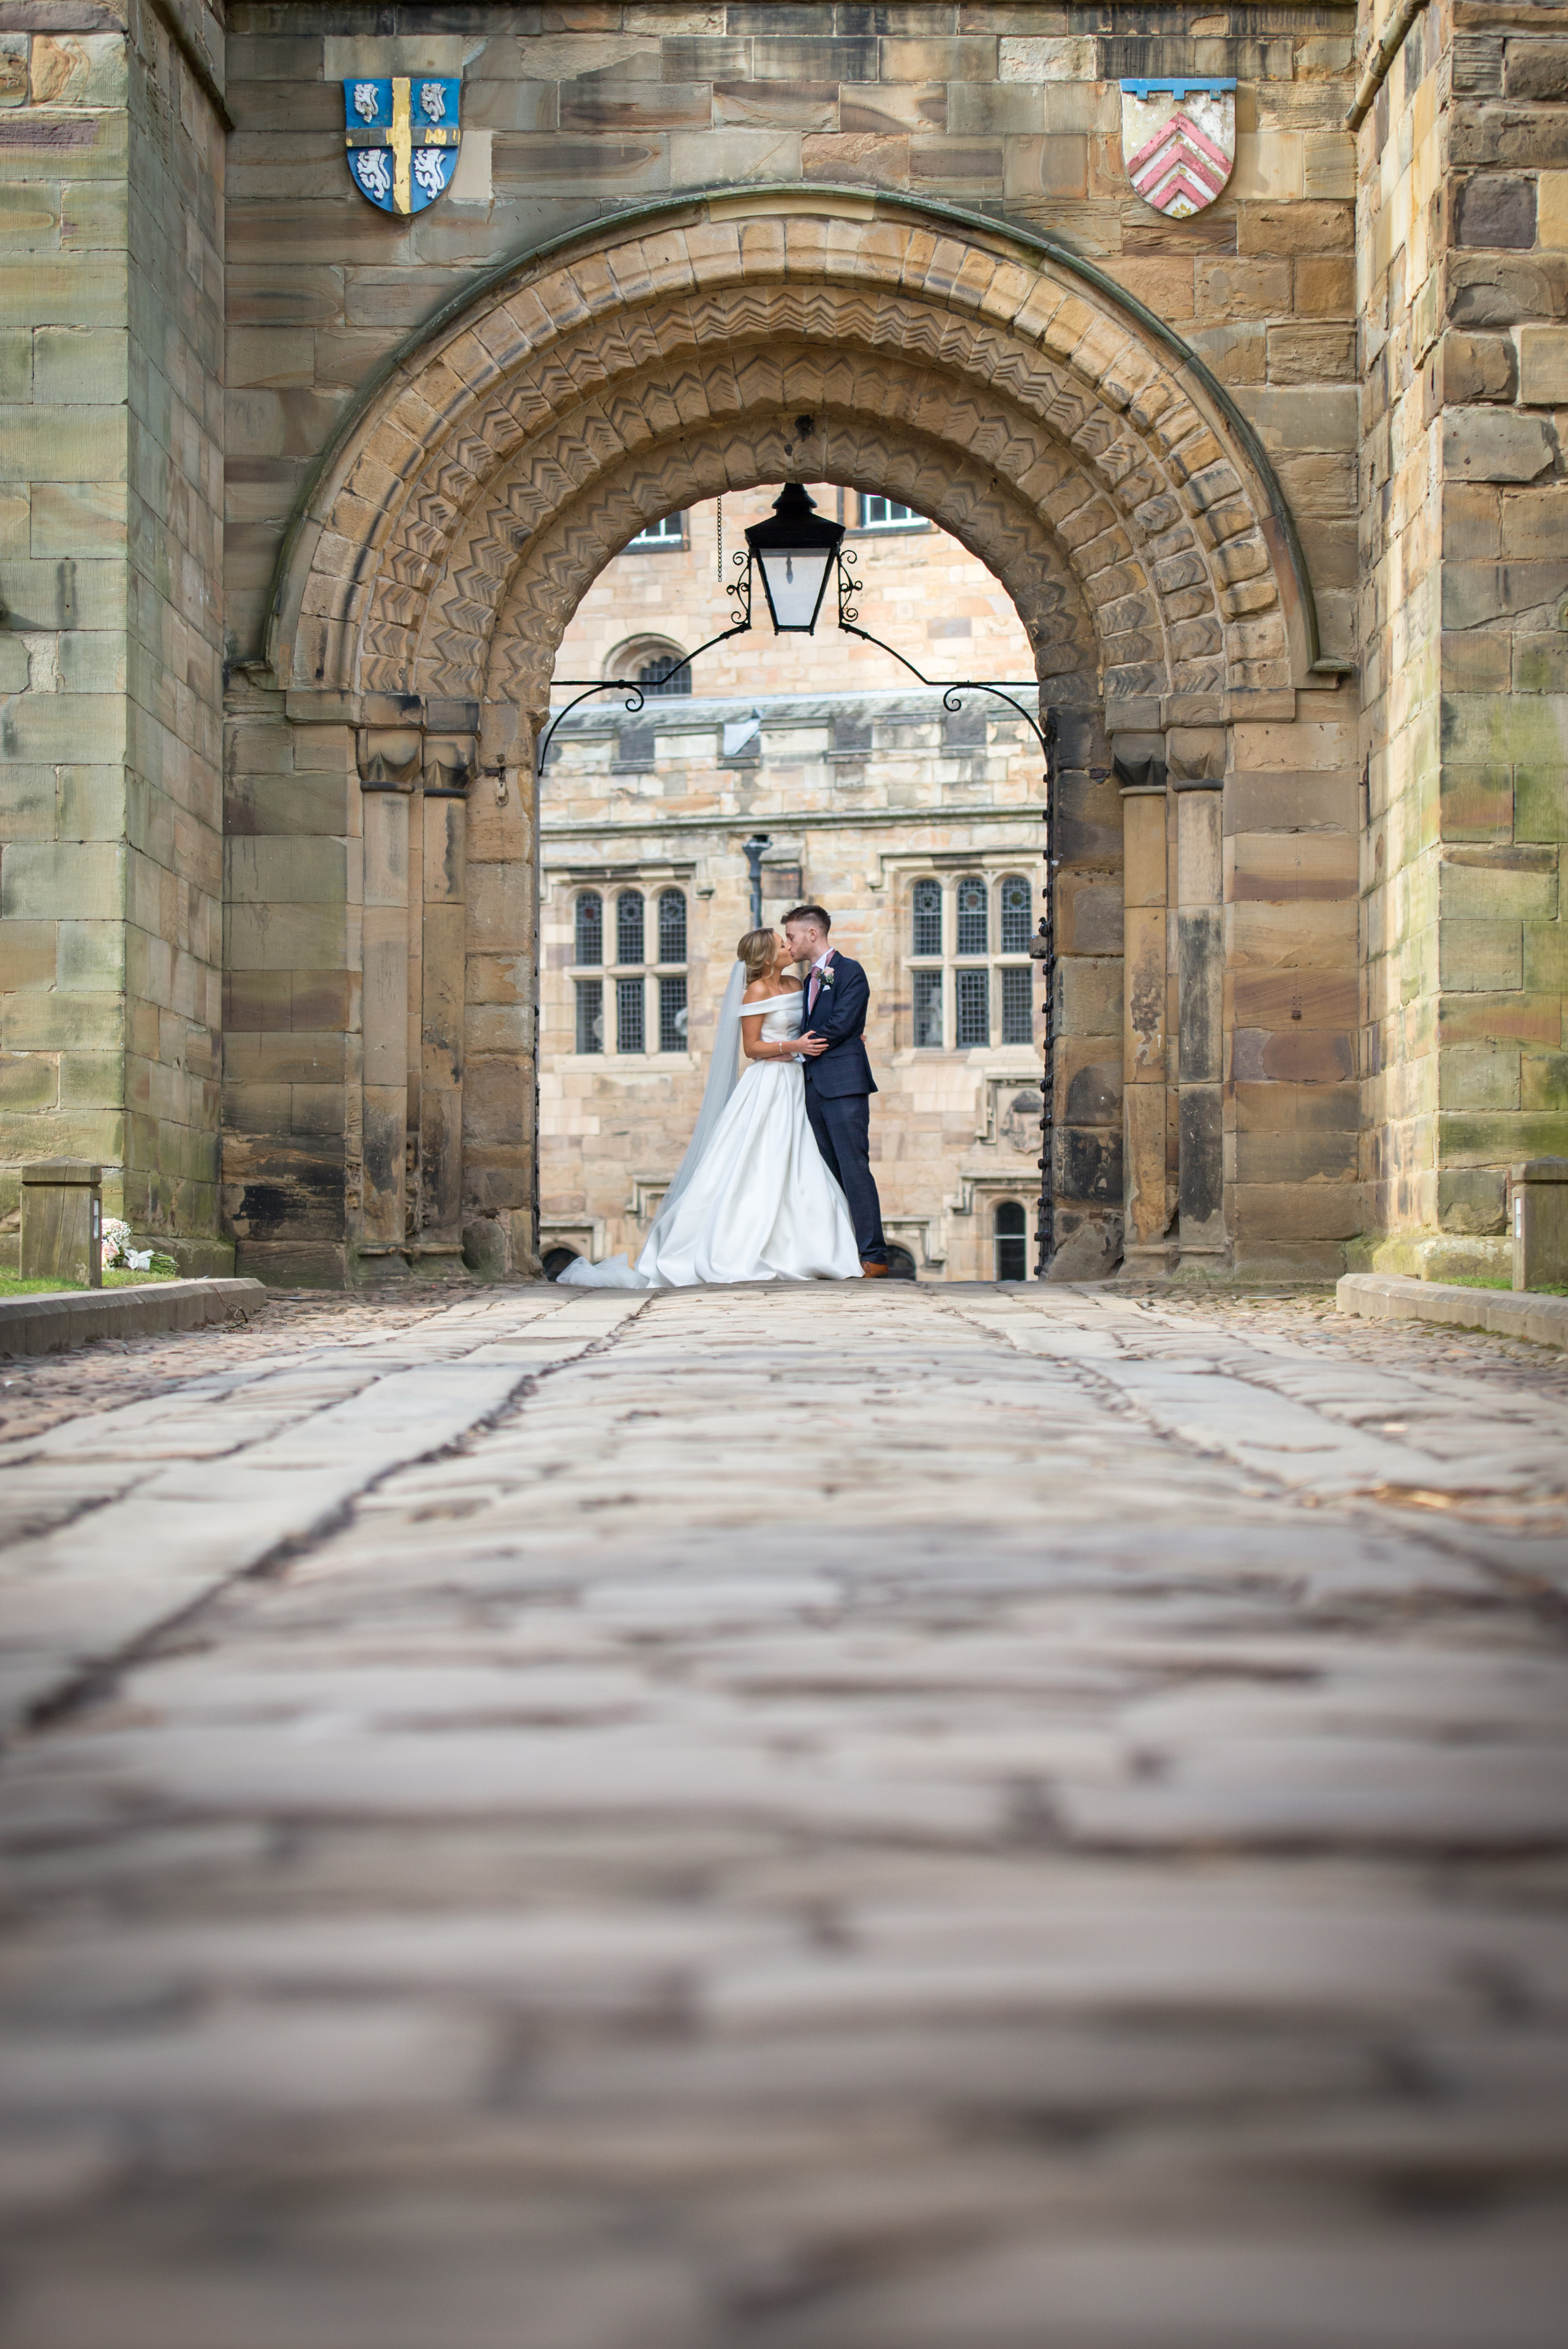 Relaxed wedding photography of bride and groom kissing in entrance archway to Inner Bailey of historic venue Durham Castle in Durham City